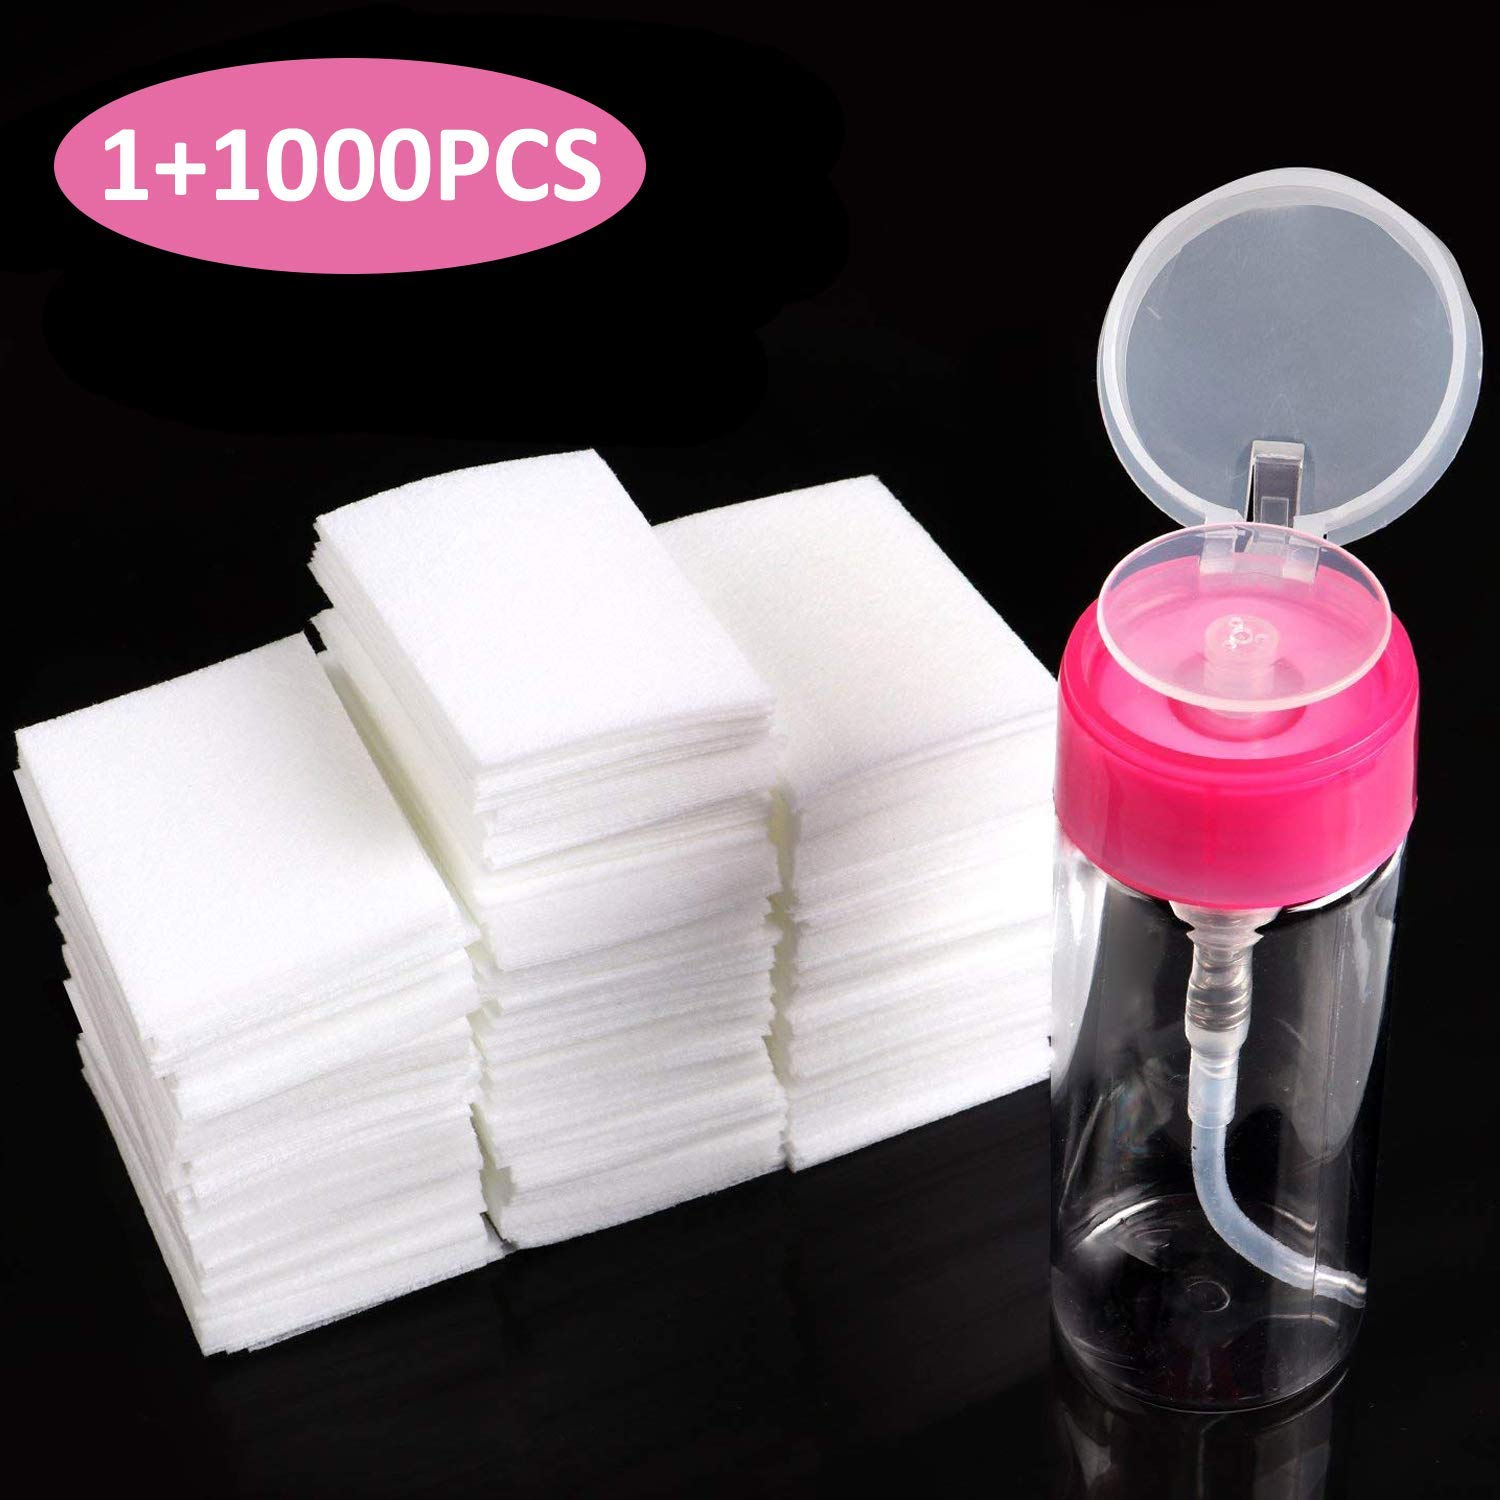 BTArtbox Gel Nail Polish Remover Set 1000PCS Lint Free Nail Wipes Cotton Pads With 1PCS Push Down Pump Dispenser Bottle for Professional Soak Off Gel Polish Remover Acrylic Nail Remover